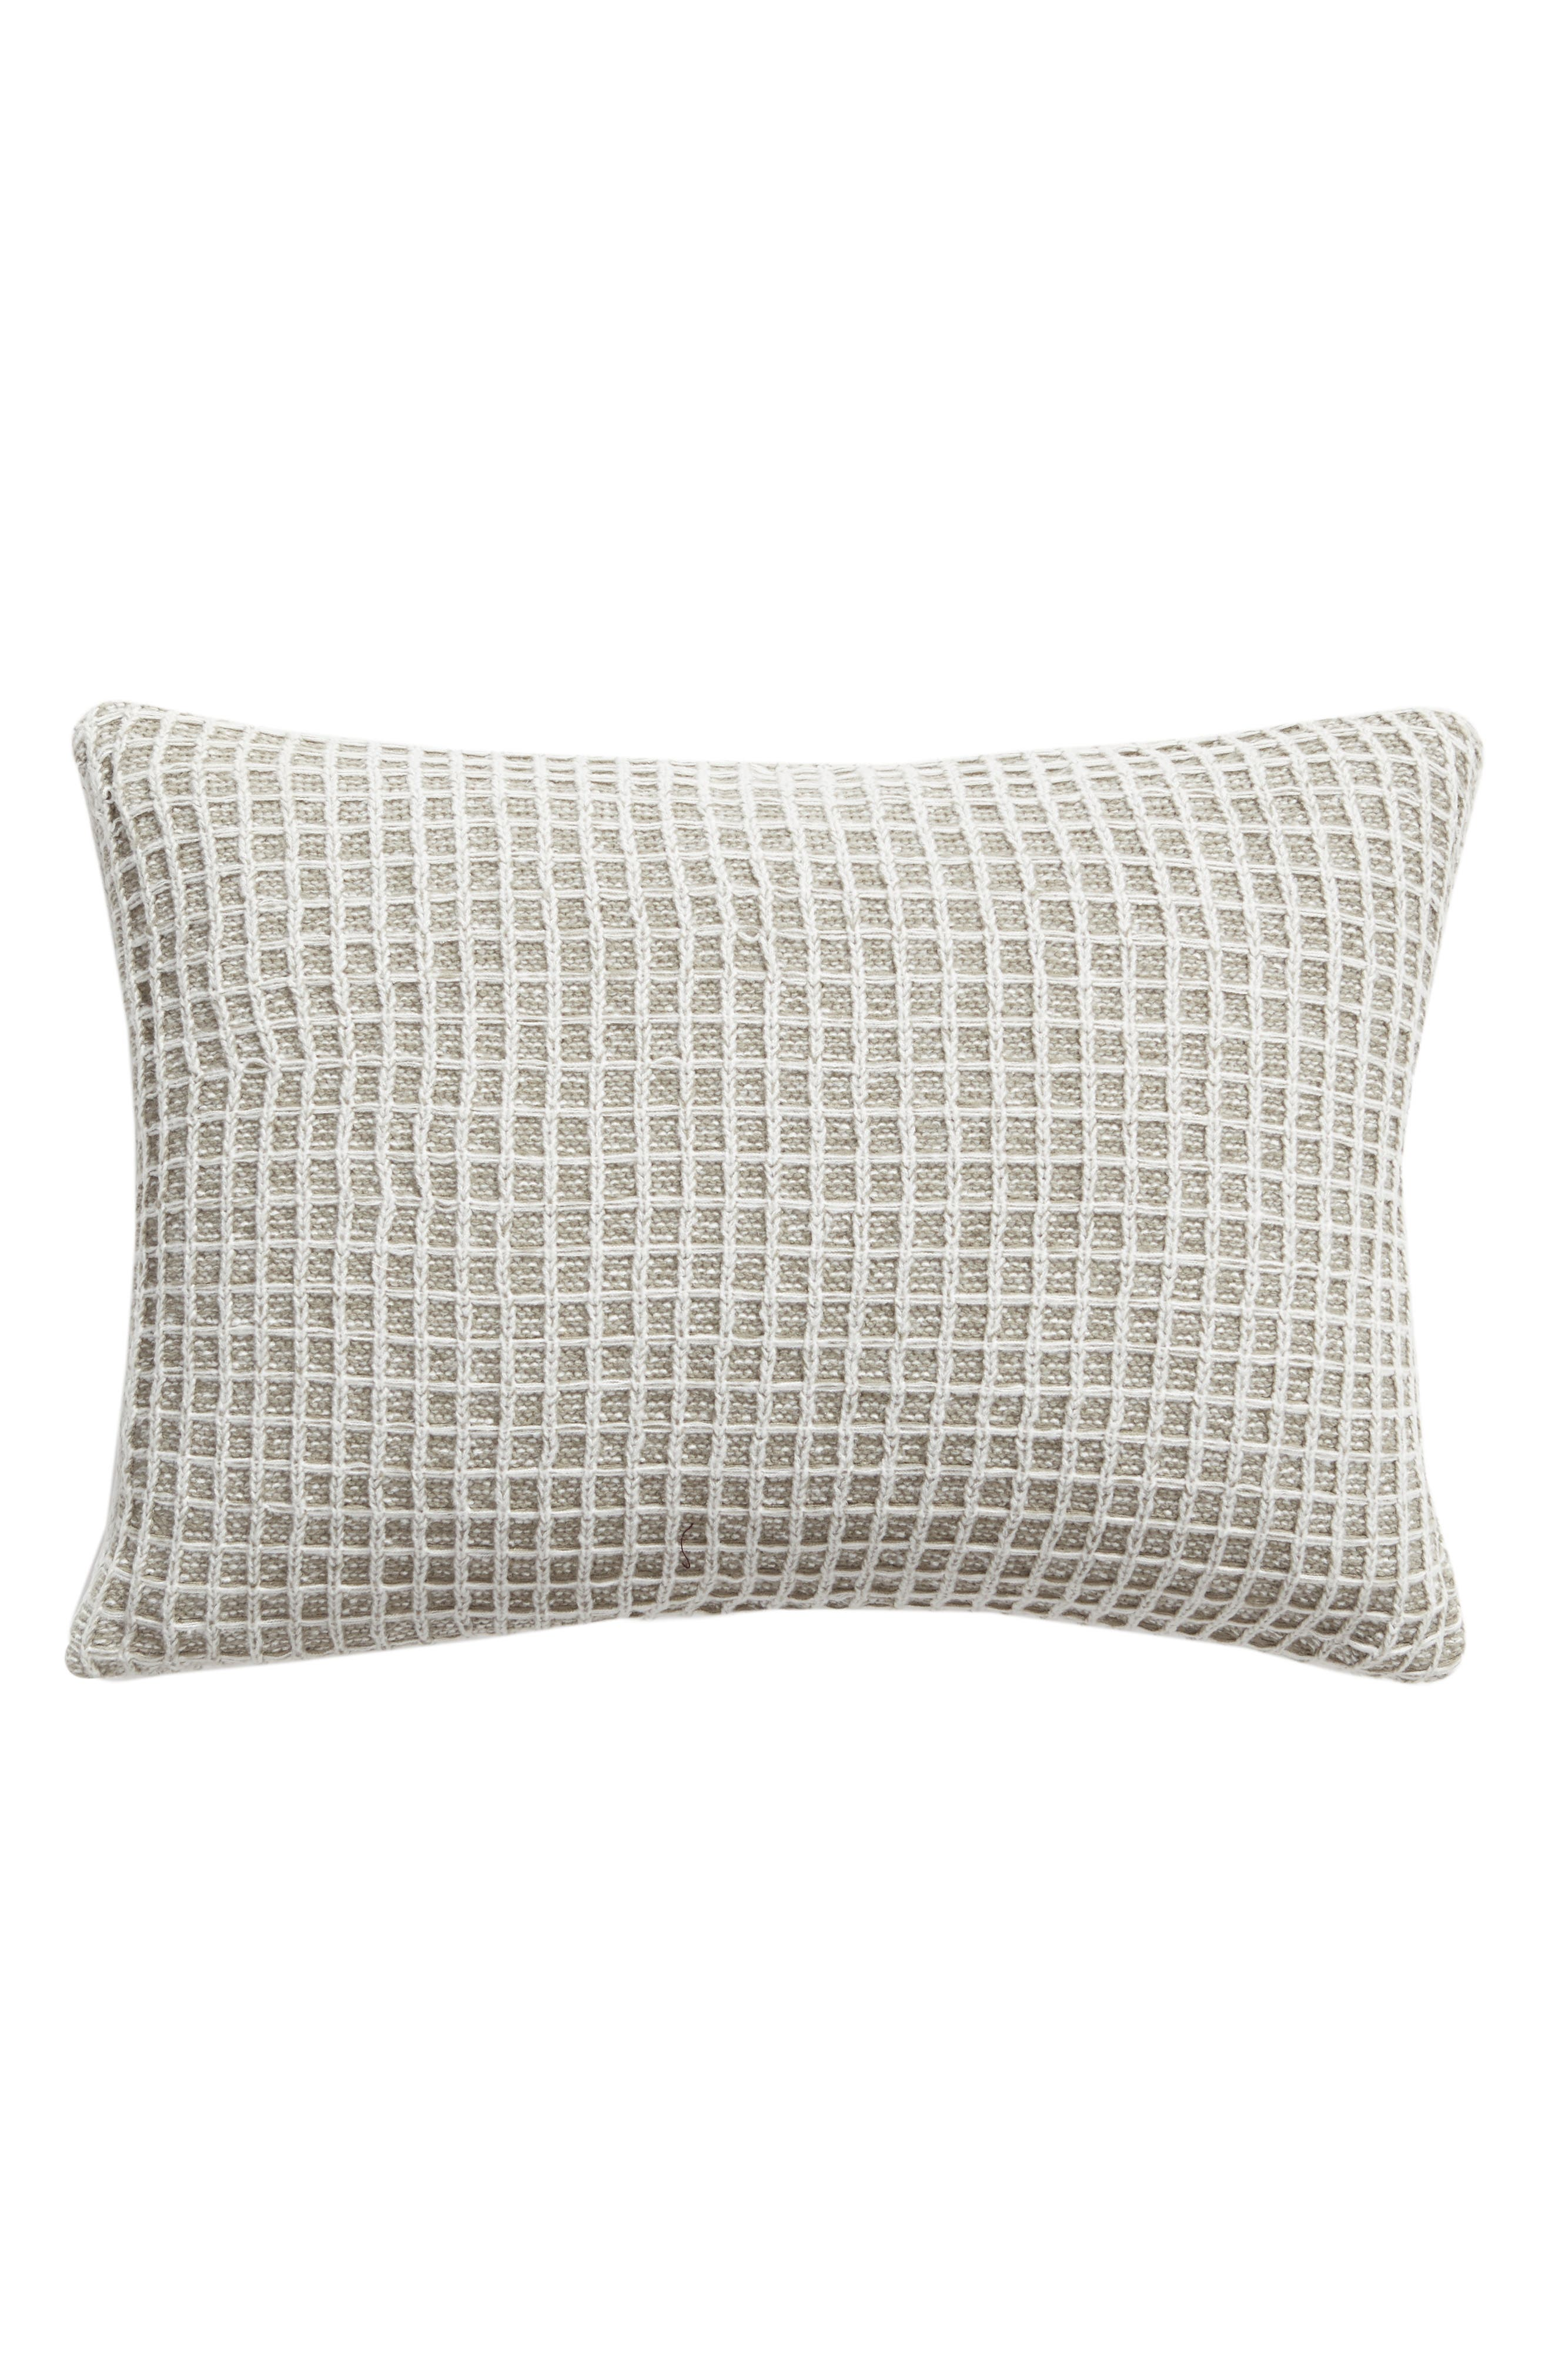 Soft Waffle Grid Accent Pillow,                             Main thumbnail 1, color,                             GREY WEATHER MULTI